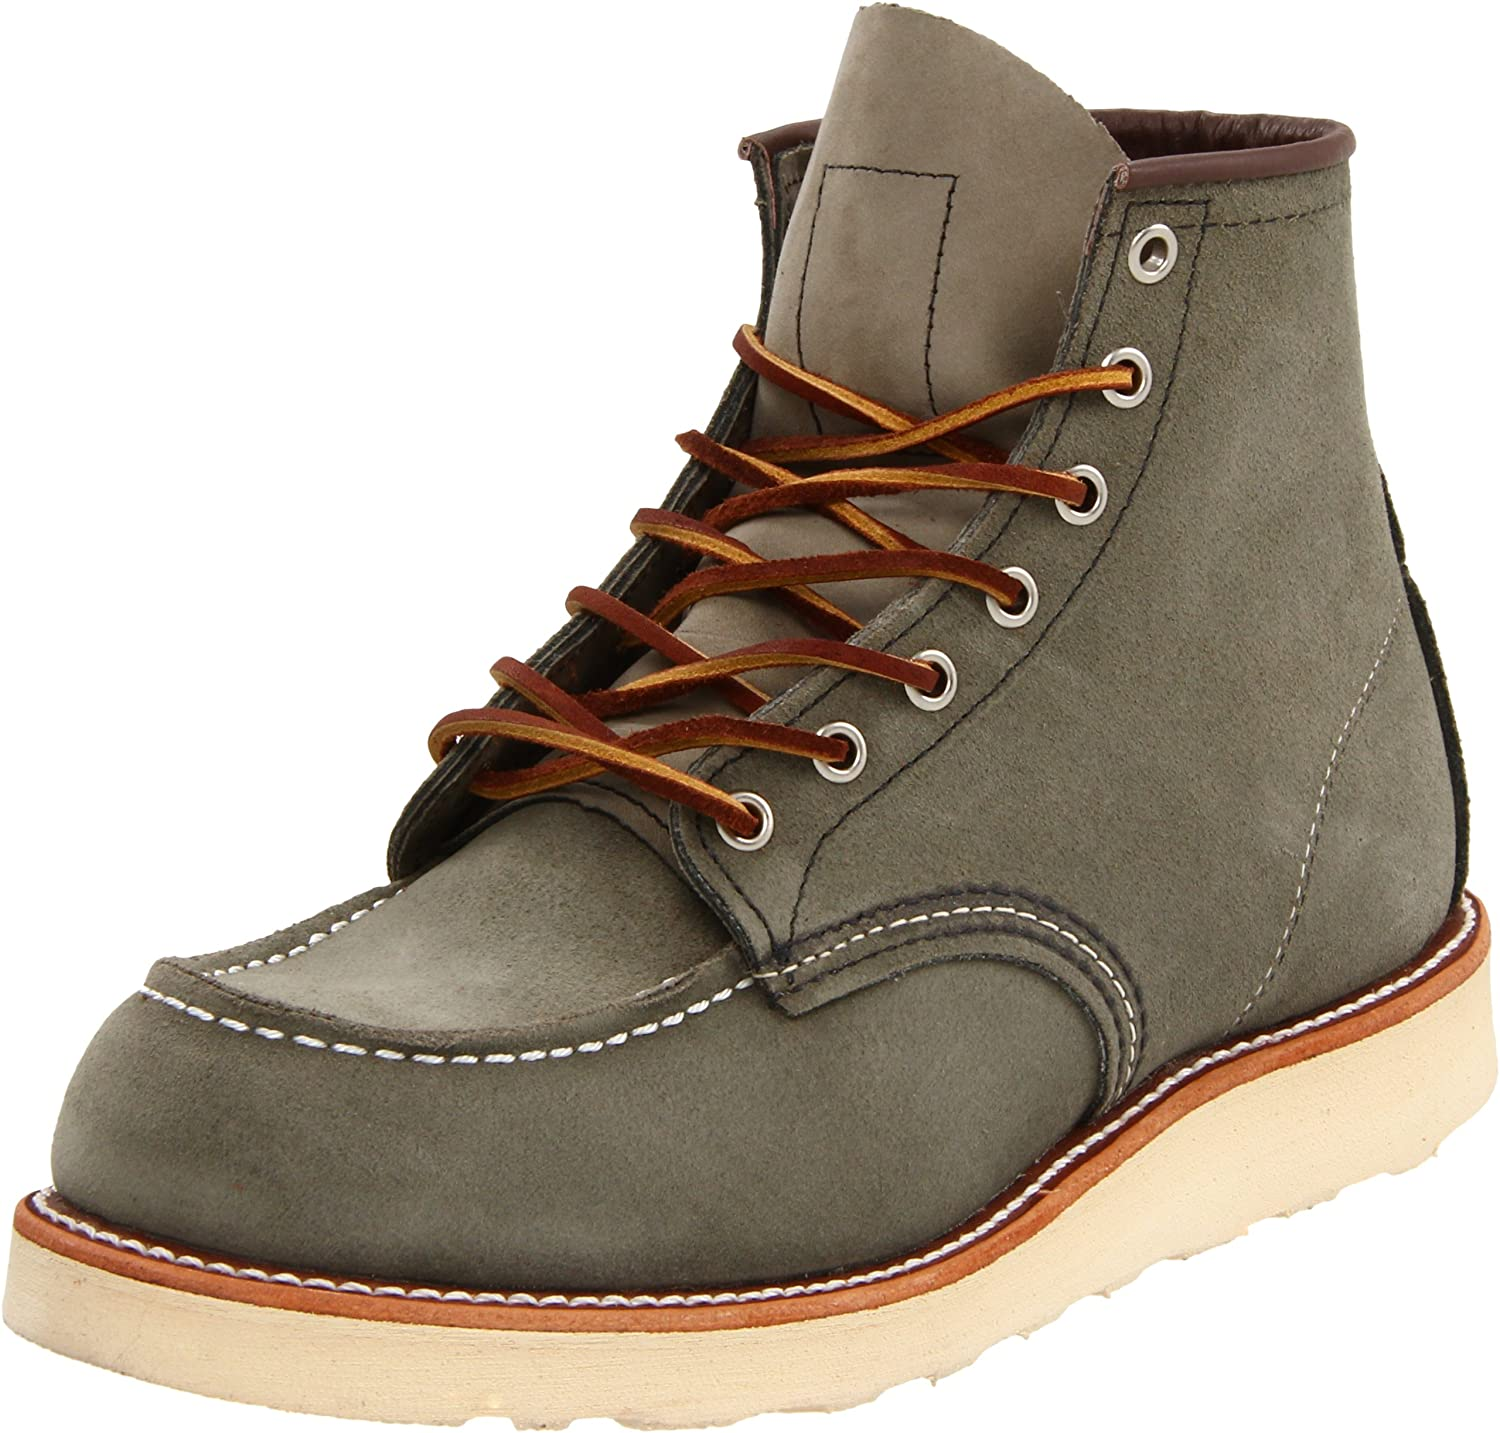 Red Wing Heritage Men's Classic Work 6-Inch Moc-Toe Boot